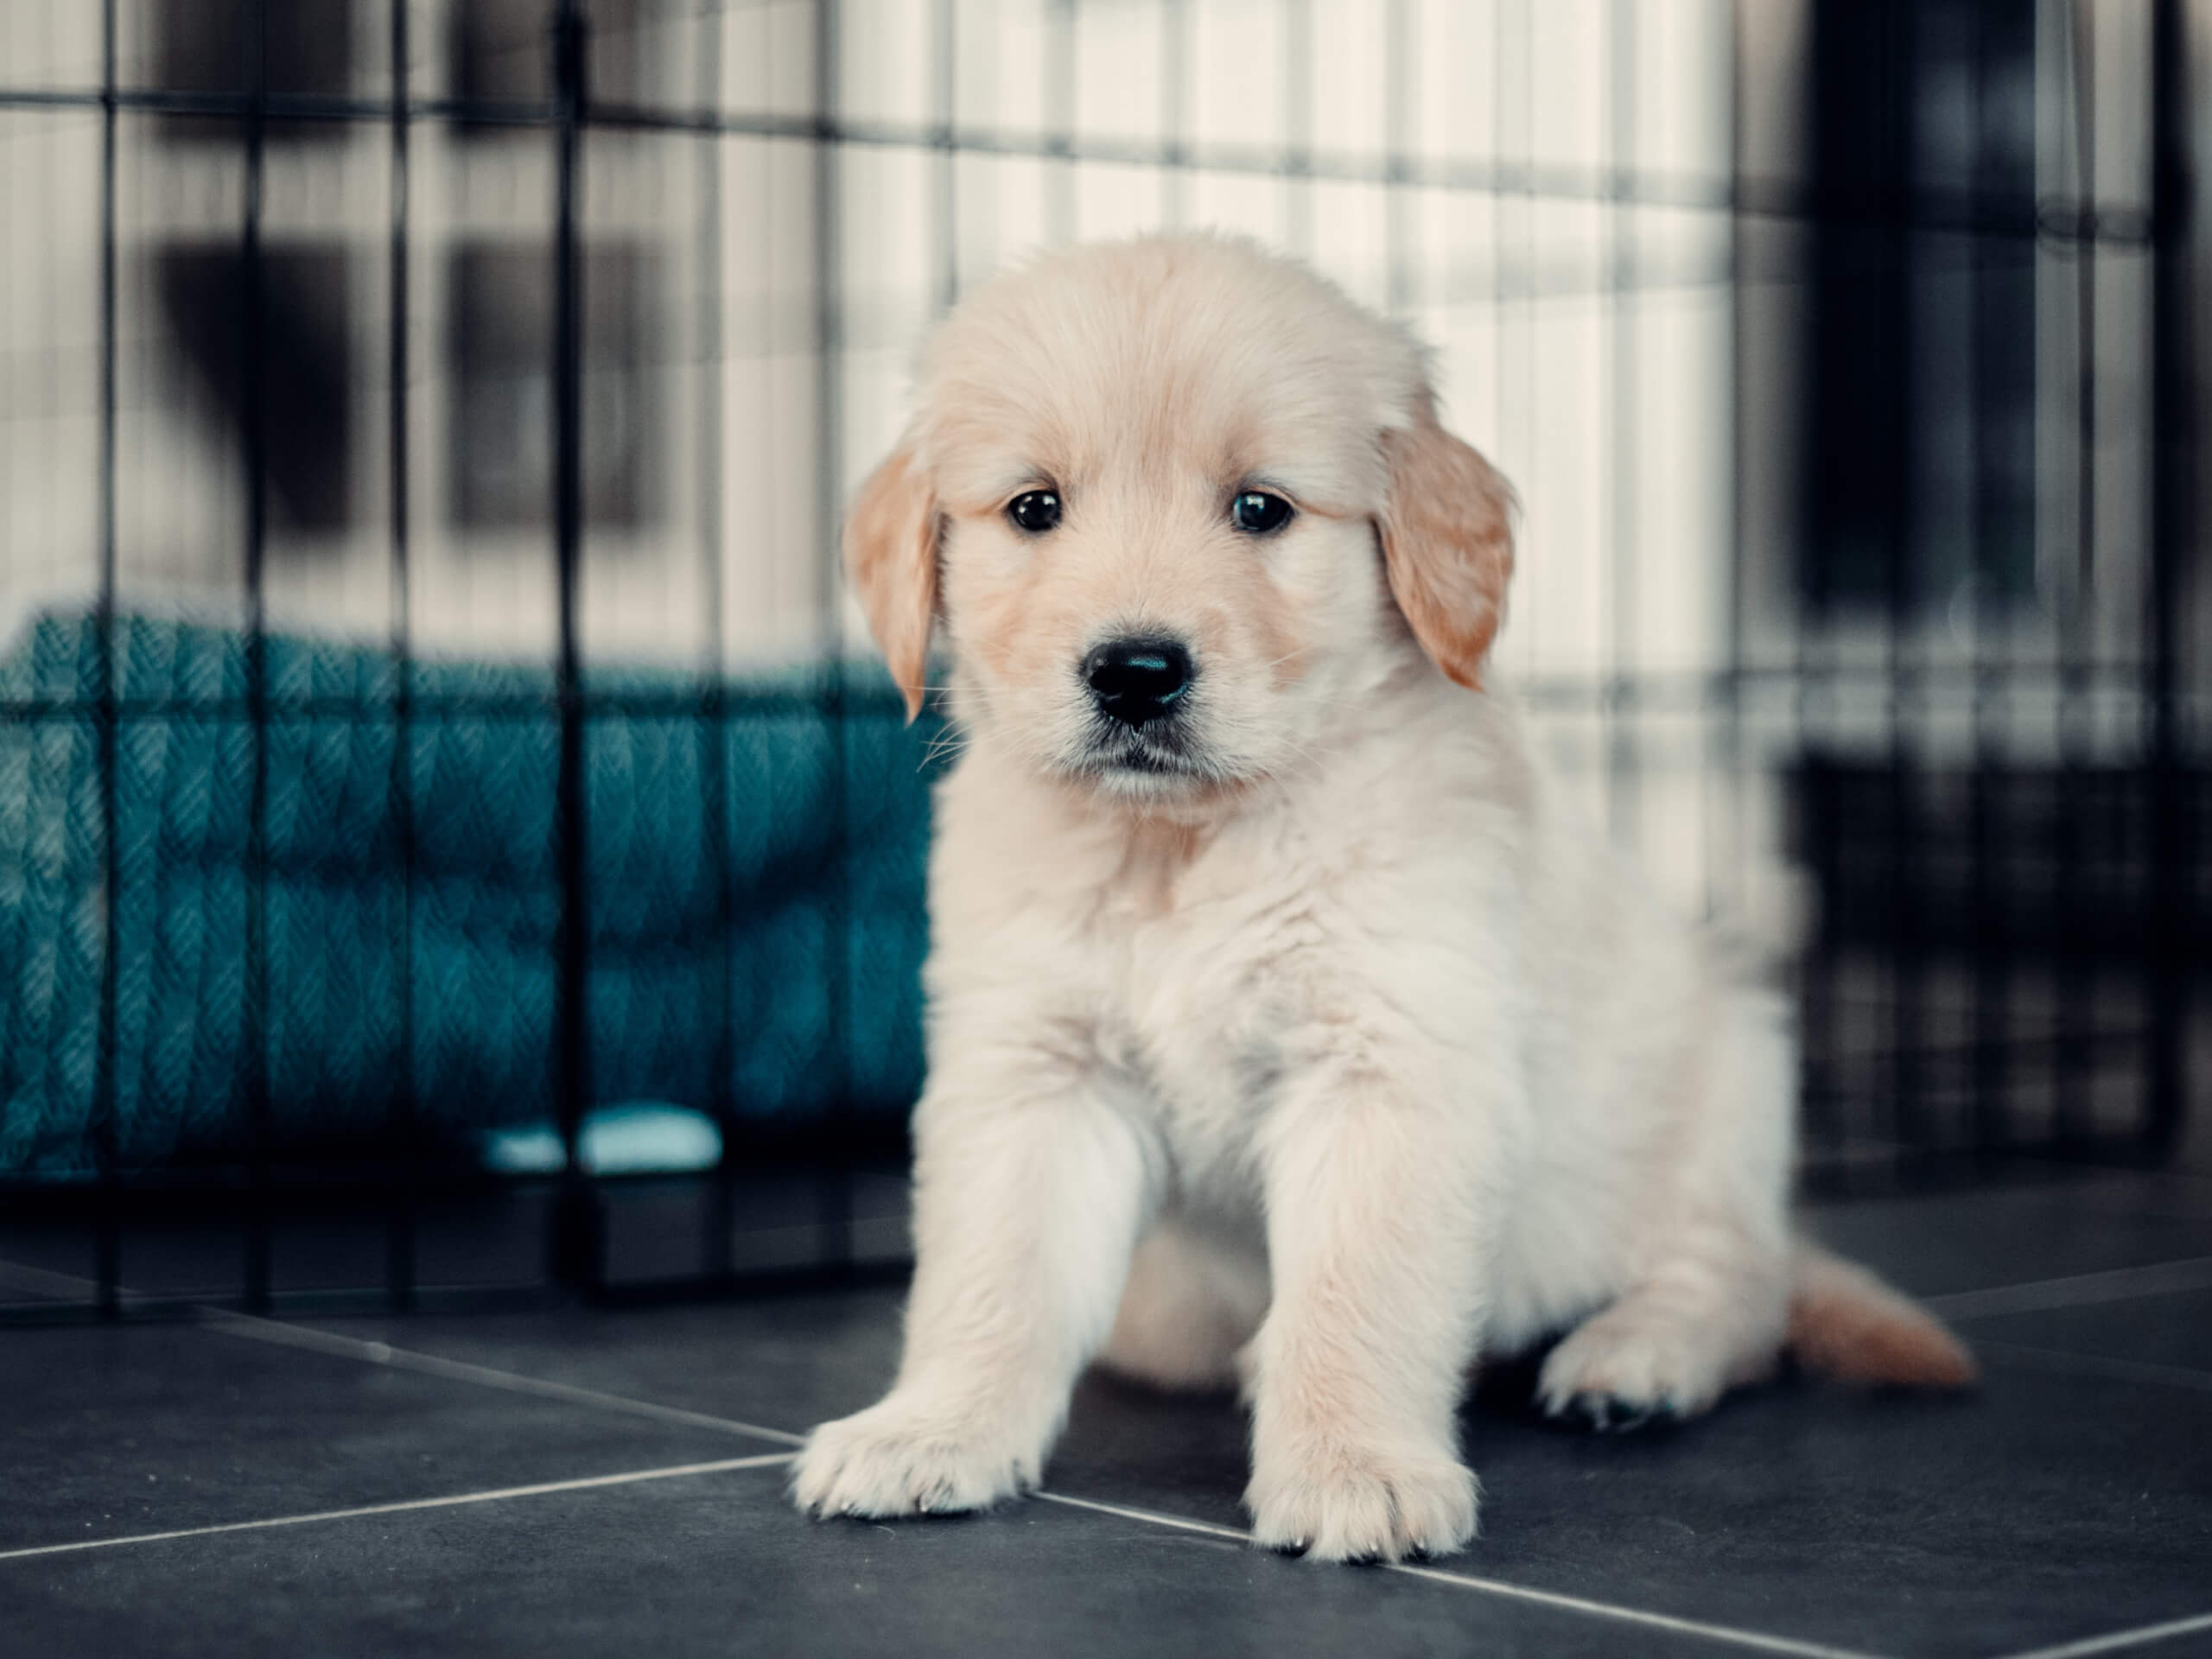 Labrador Retriever puppy learning to get crate trained